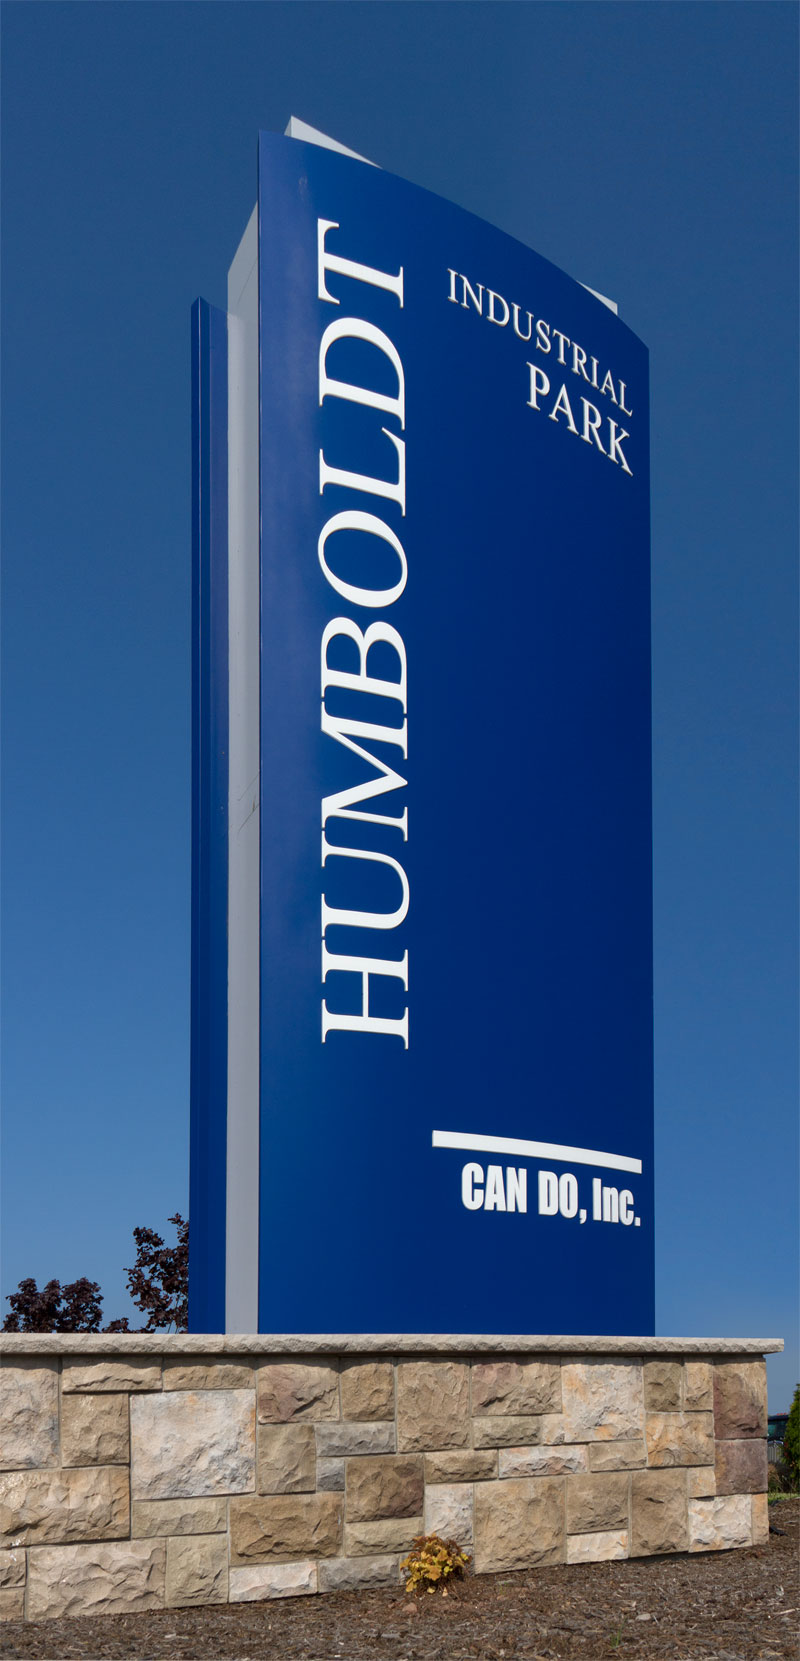 Humboldt Industrial Park is CAN DO's largest park, at 3,000 acres in size.